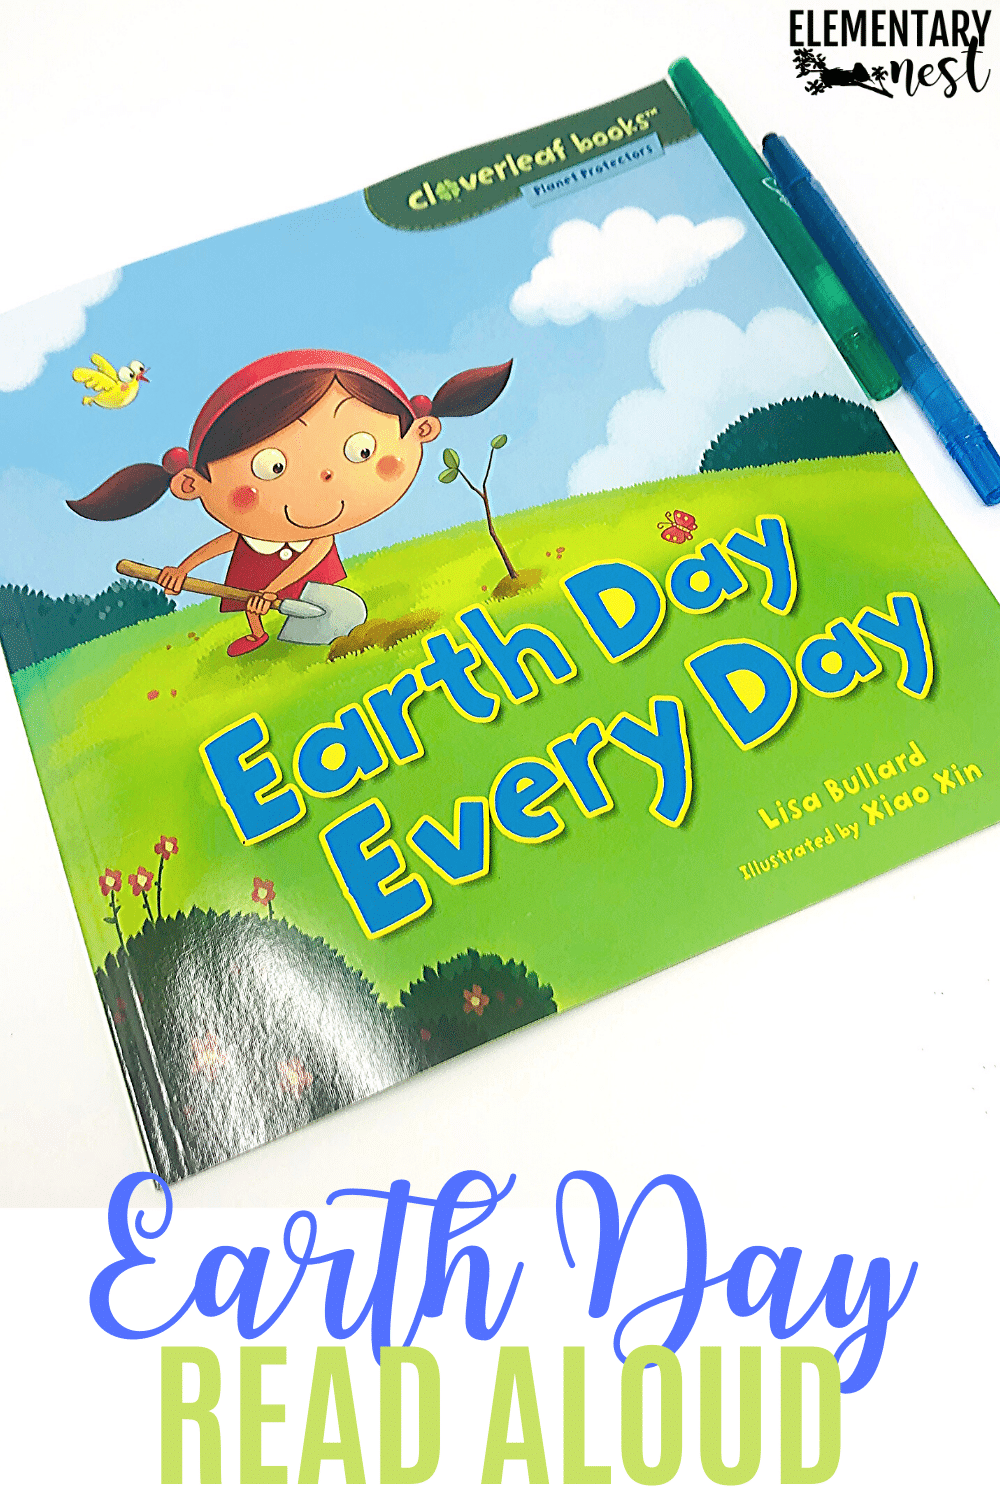 Earth Day Every Day book and reading activity